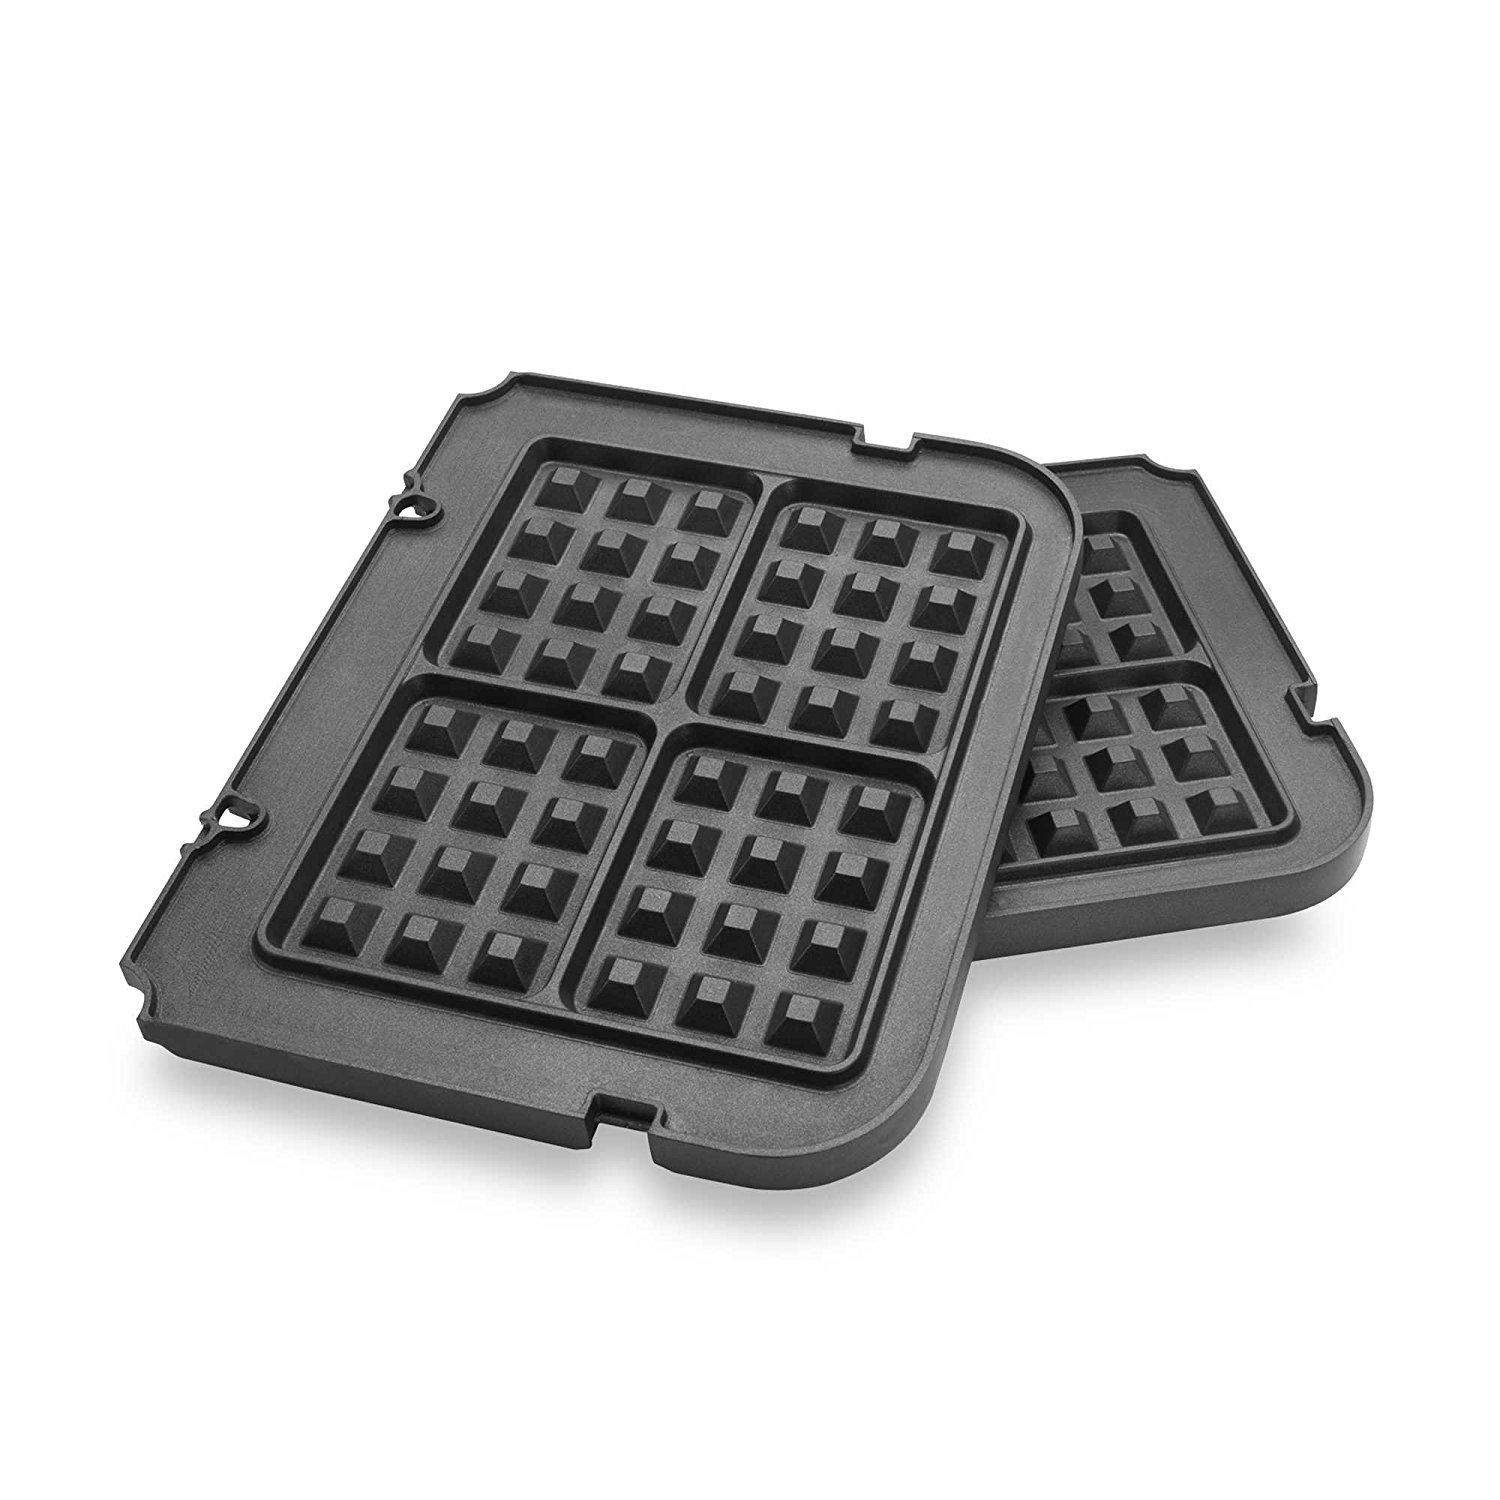 Gvode Waffle Plates for Cuisinart Griddler GR-4N /CGR-4NC/GRID-8N /GR-5B Series (Not for Model GR-4/GRID-8) Gvode inc G1201A